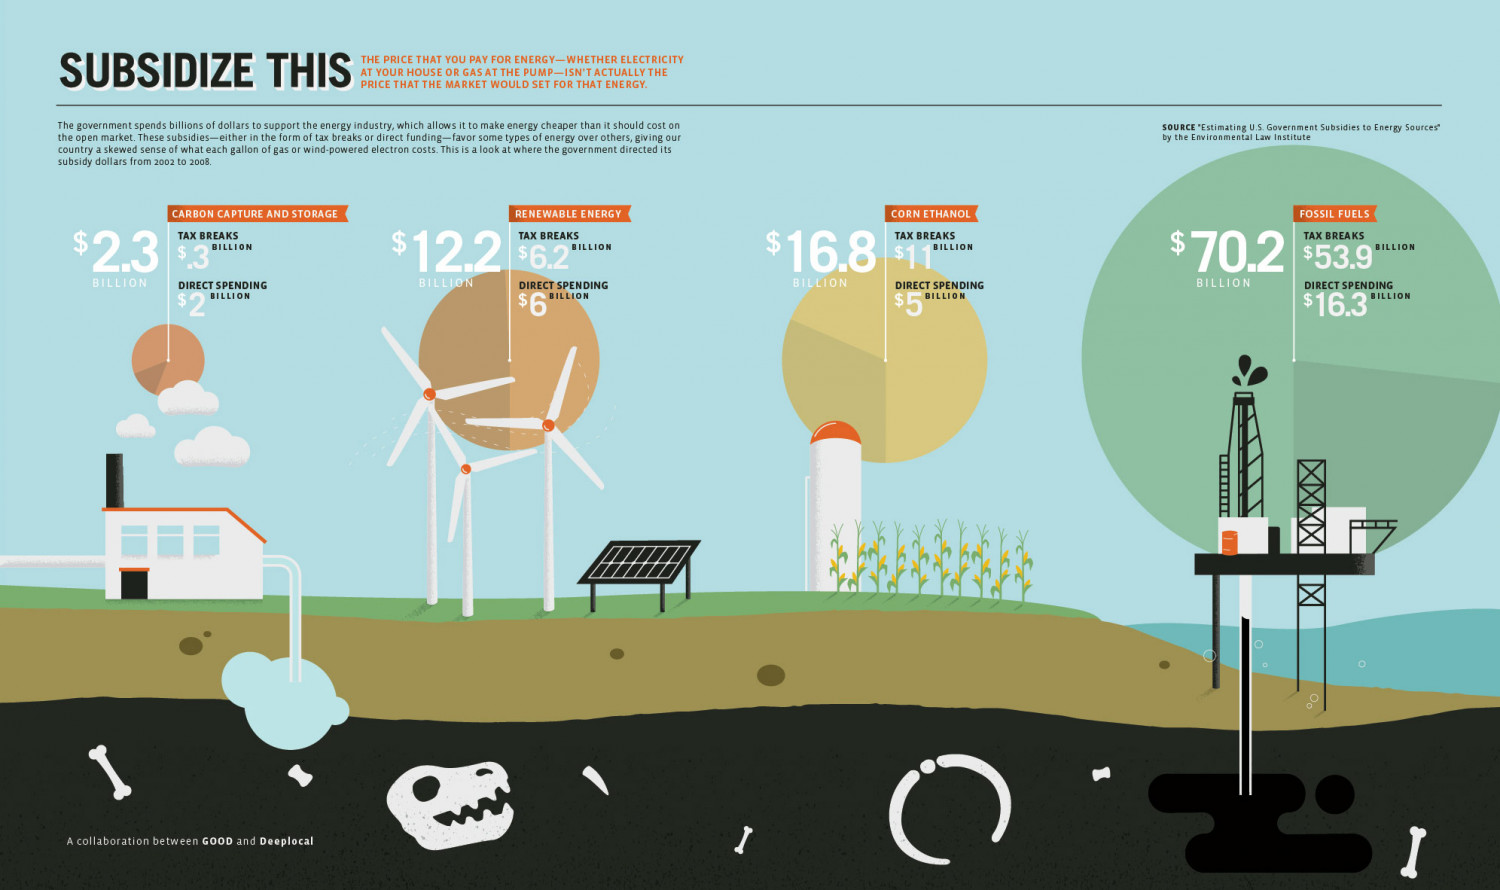 Subsidize This Infographic